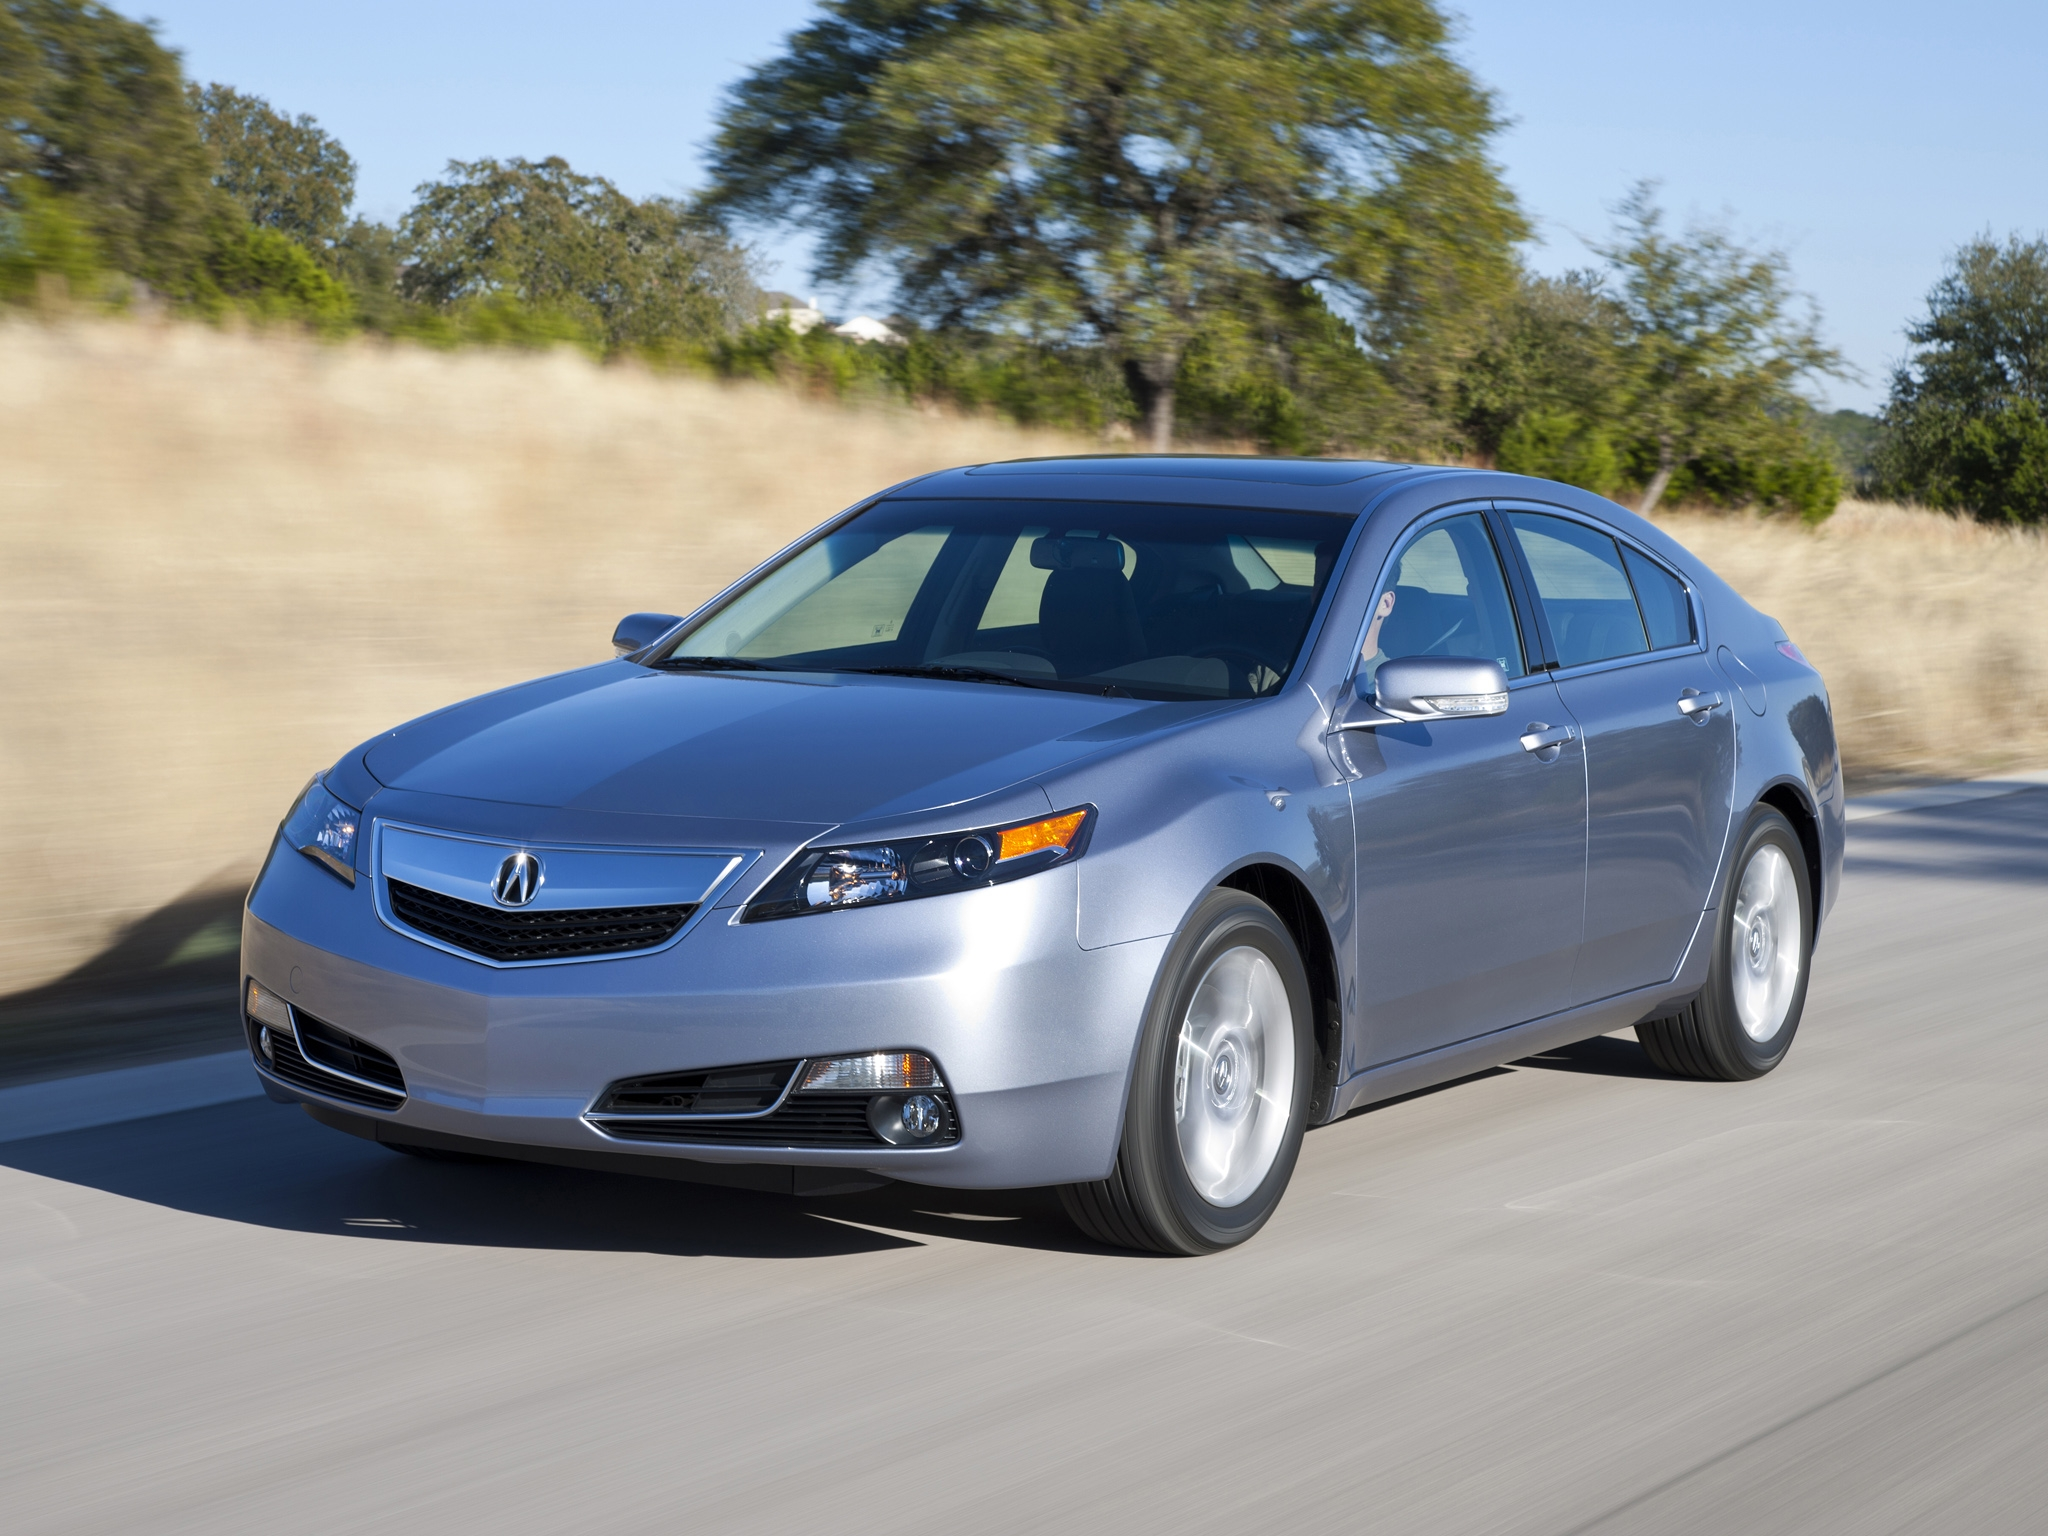 132893 download wallpaper Cars, Acura, Tl, 2011, Silver Metallic, Front View, Style, Auto, Akura, Speed, Nature, Asphalt, Trees screensavers and pictures for free